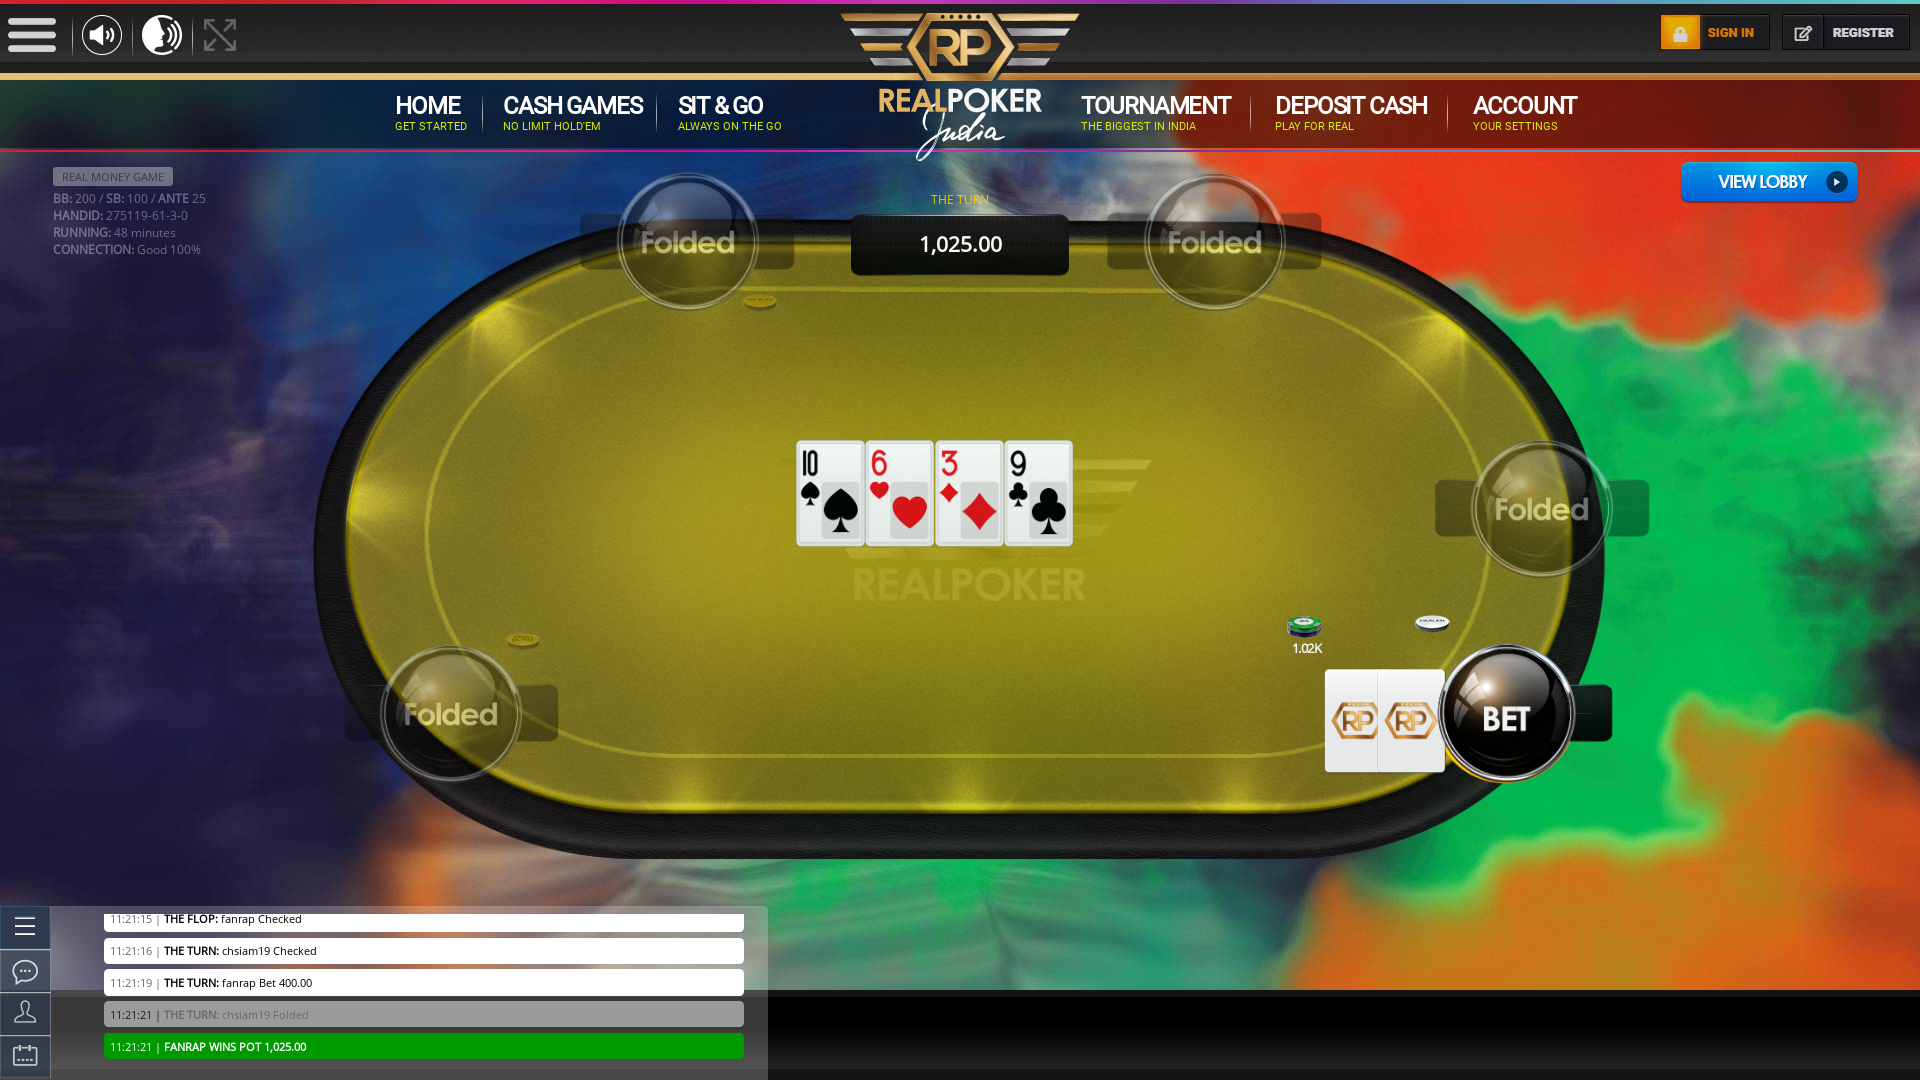 10 player texas holdem table at real poker with the table id 275119